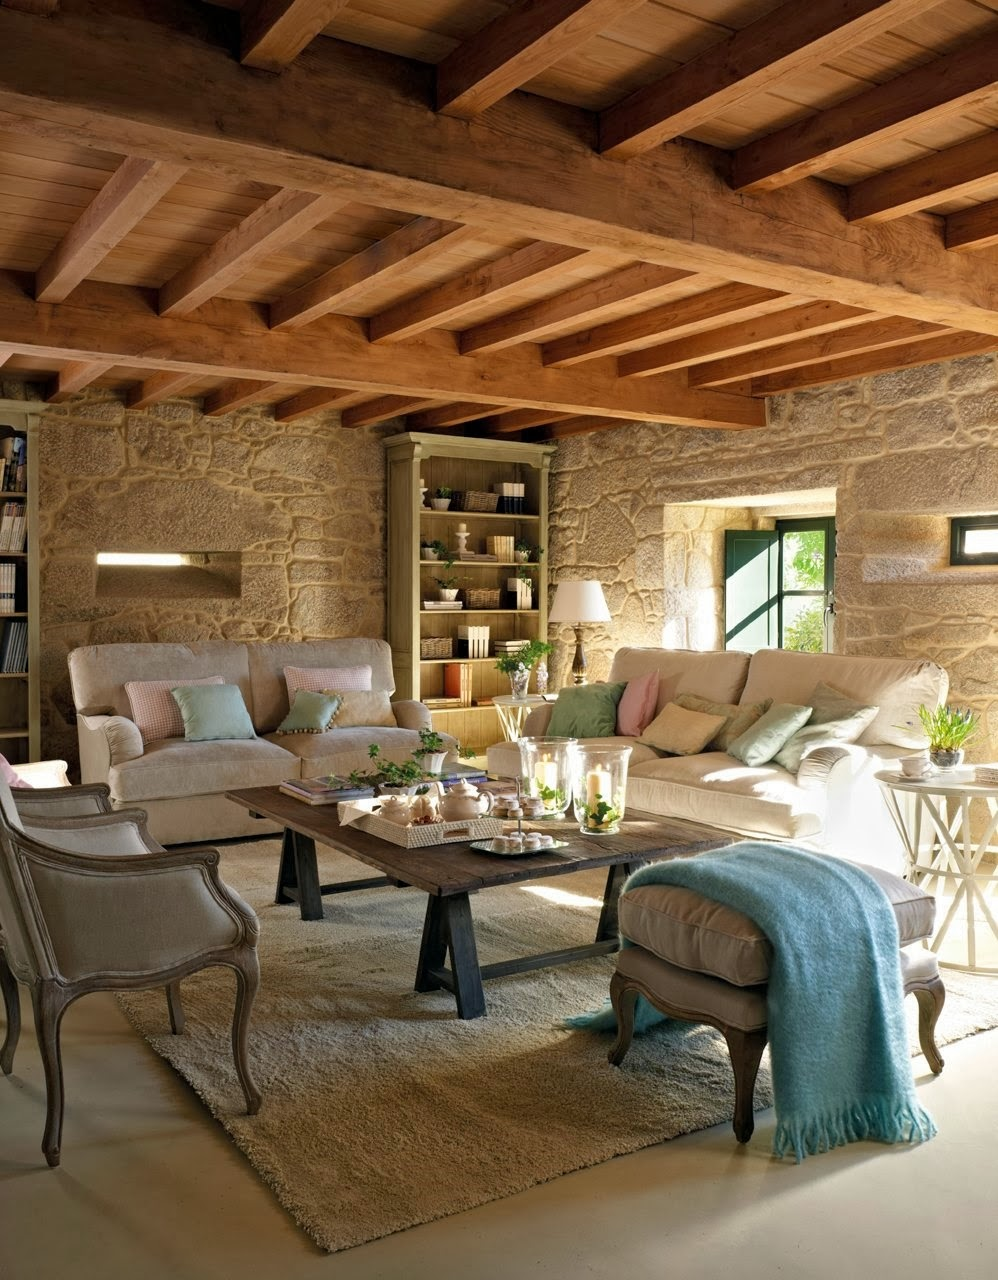 Top 10 rustic home decorations you would love 7 - Decoracion de techos rusticos ...